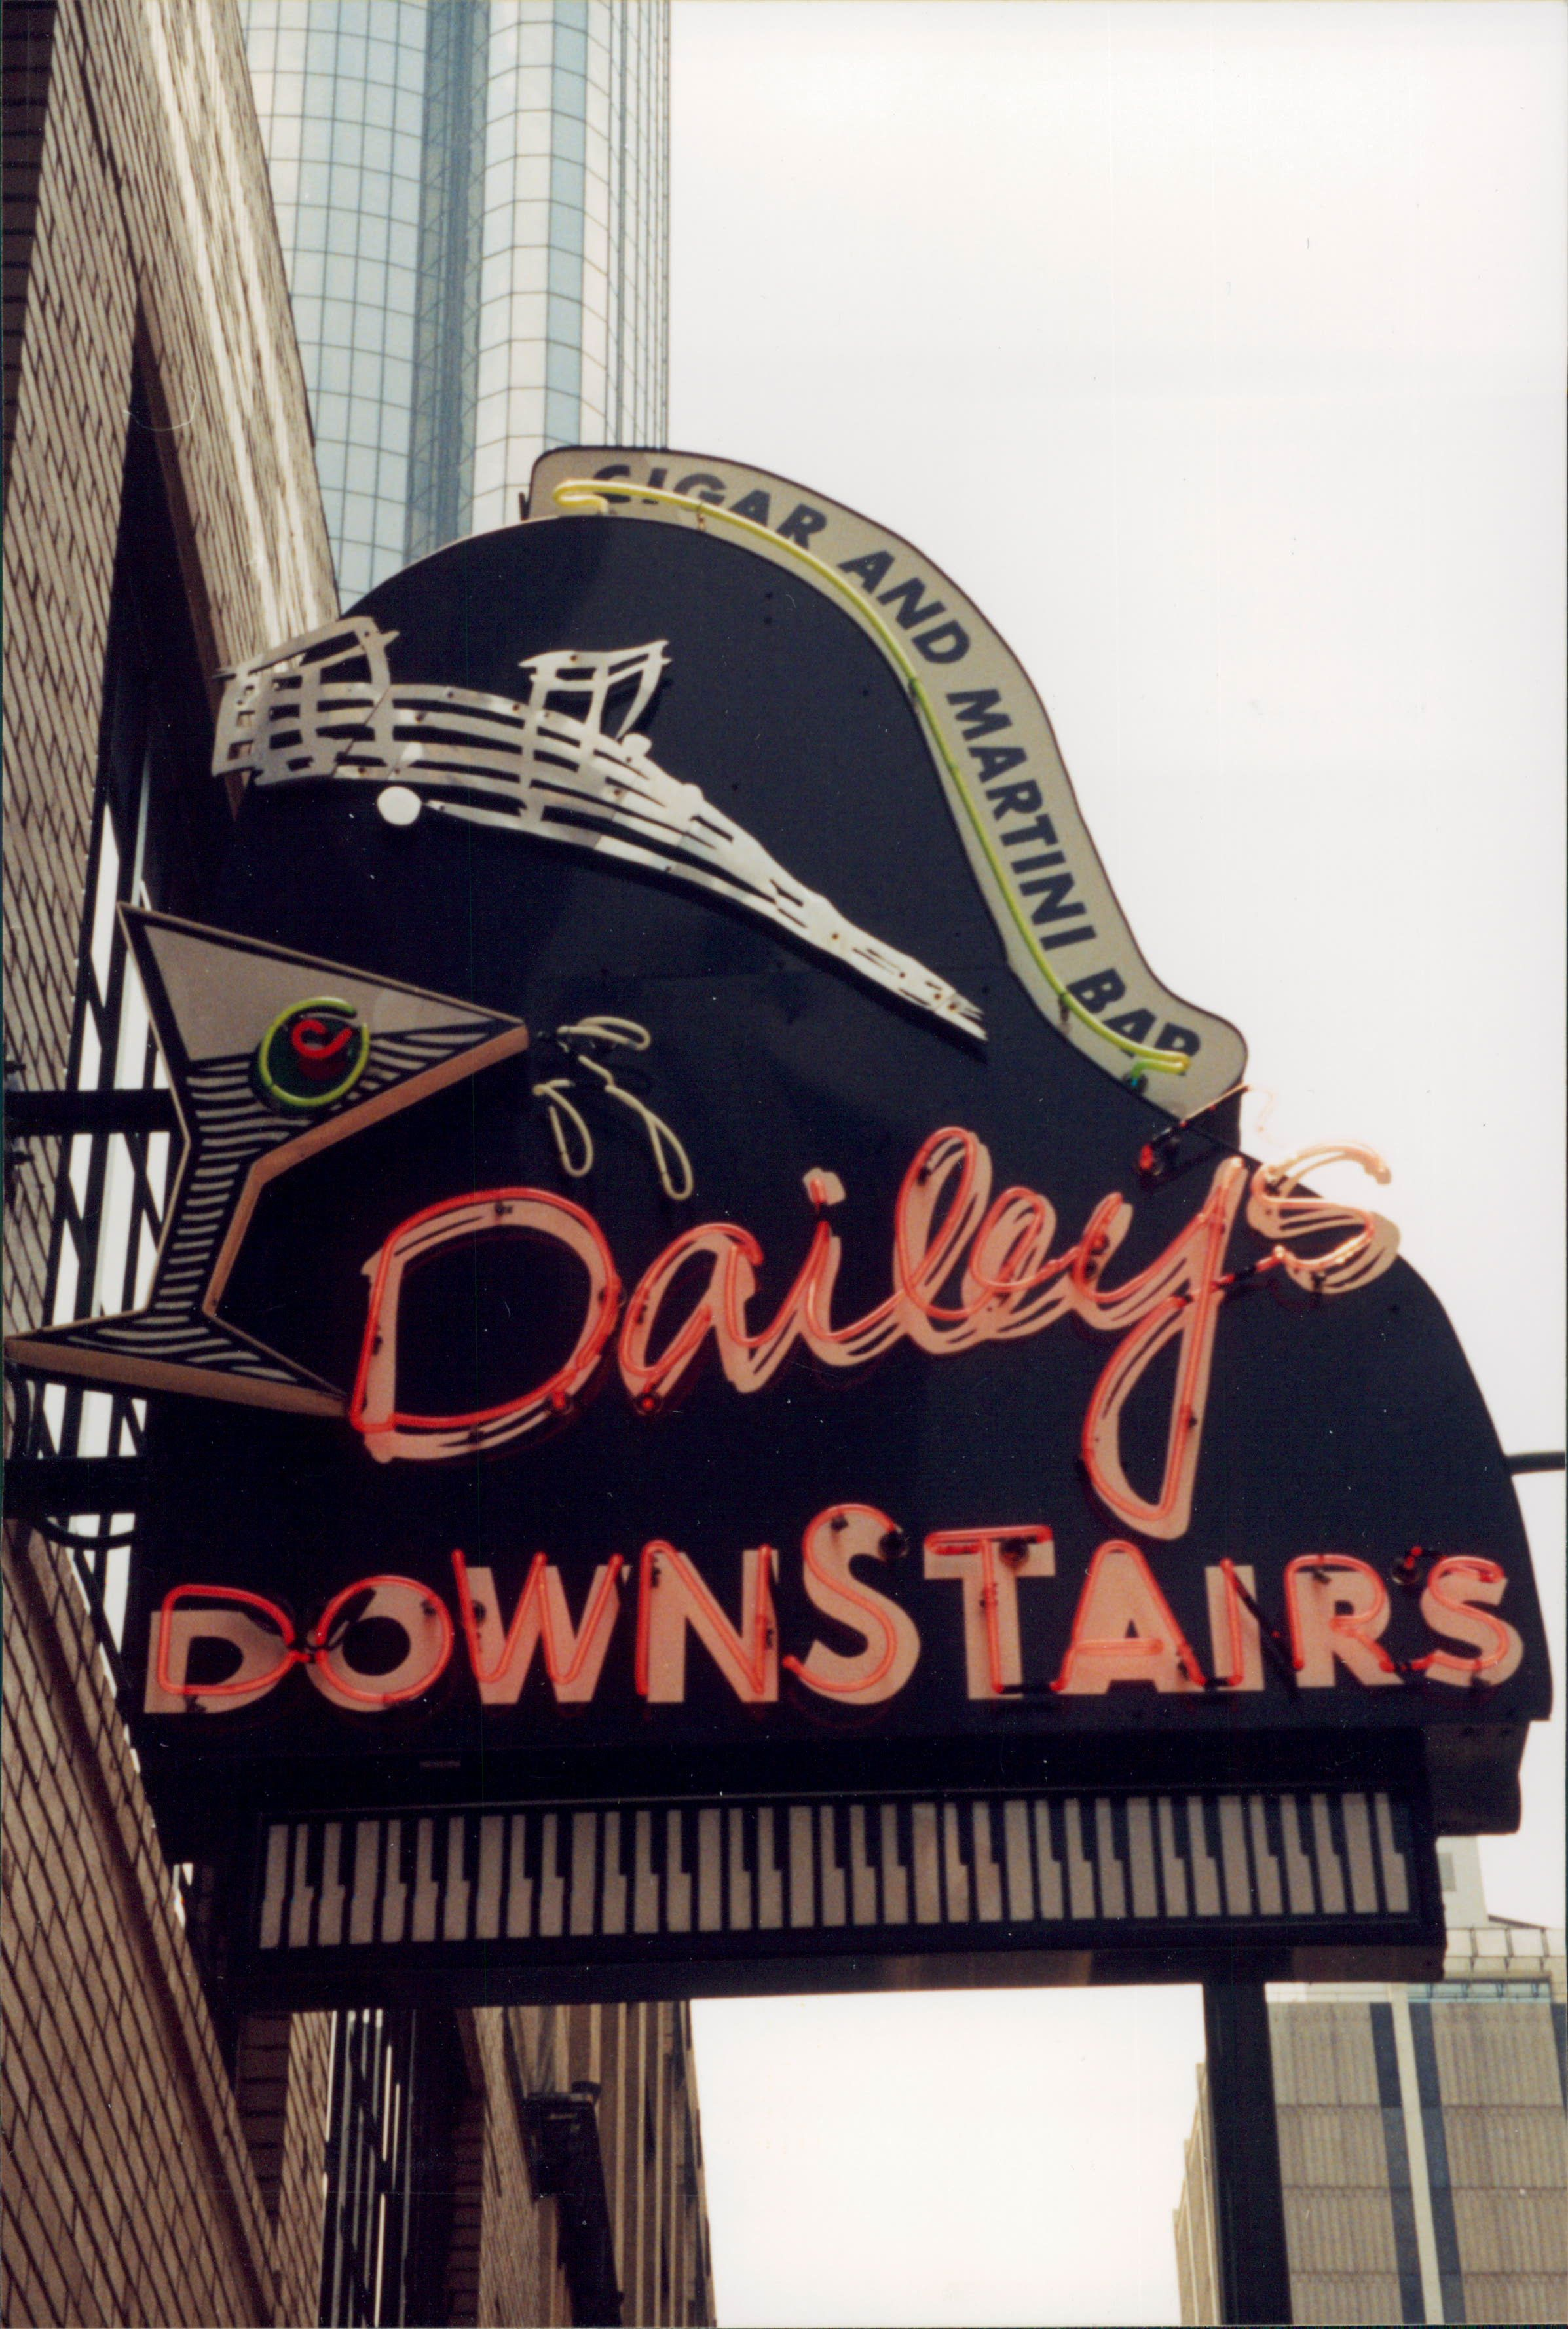 Dailey S Downstairs Atlanta Georgia The Best Dessert I Ever Had Came From This Restaurant My Dad Would Bring Home Vintage Neon Signs Neon Signs Retro Sign